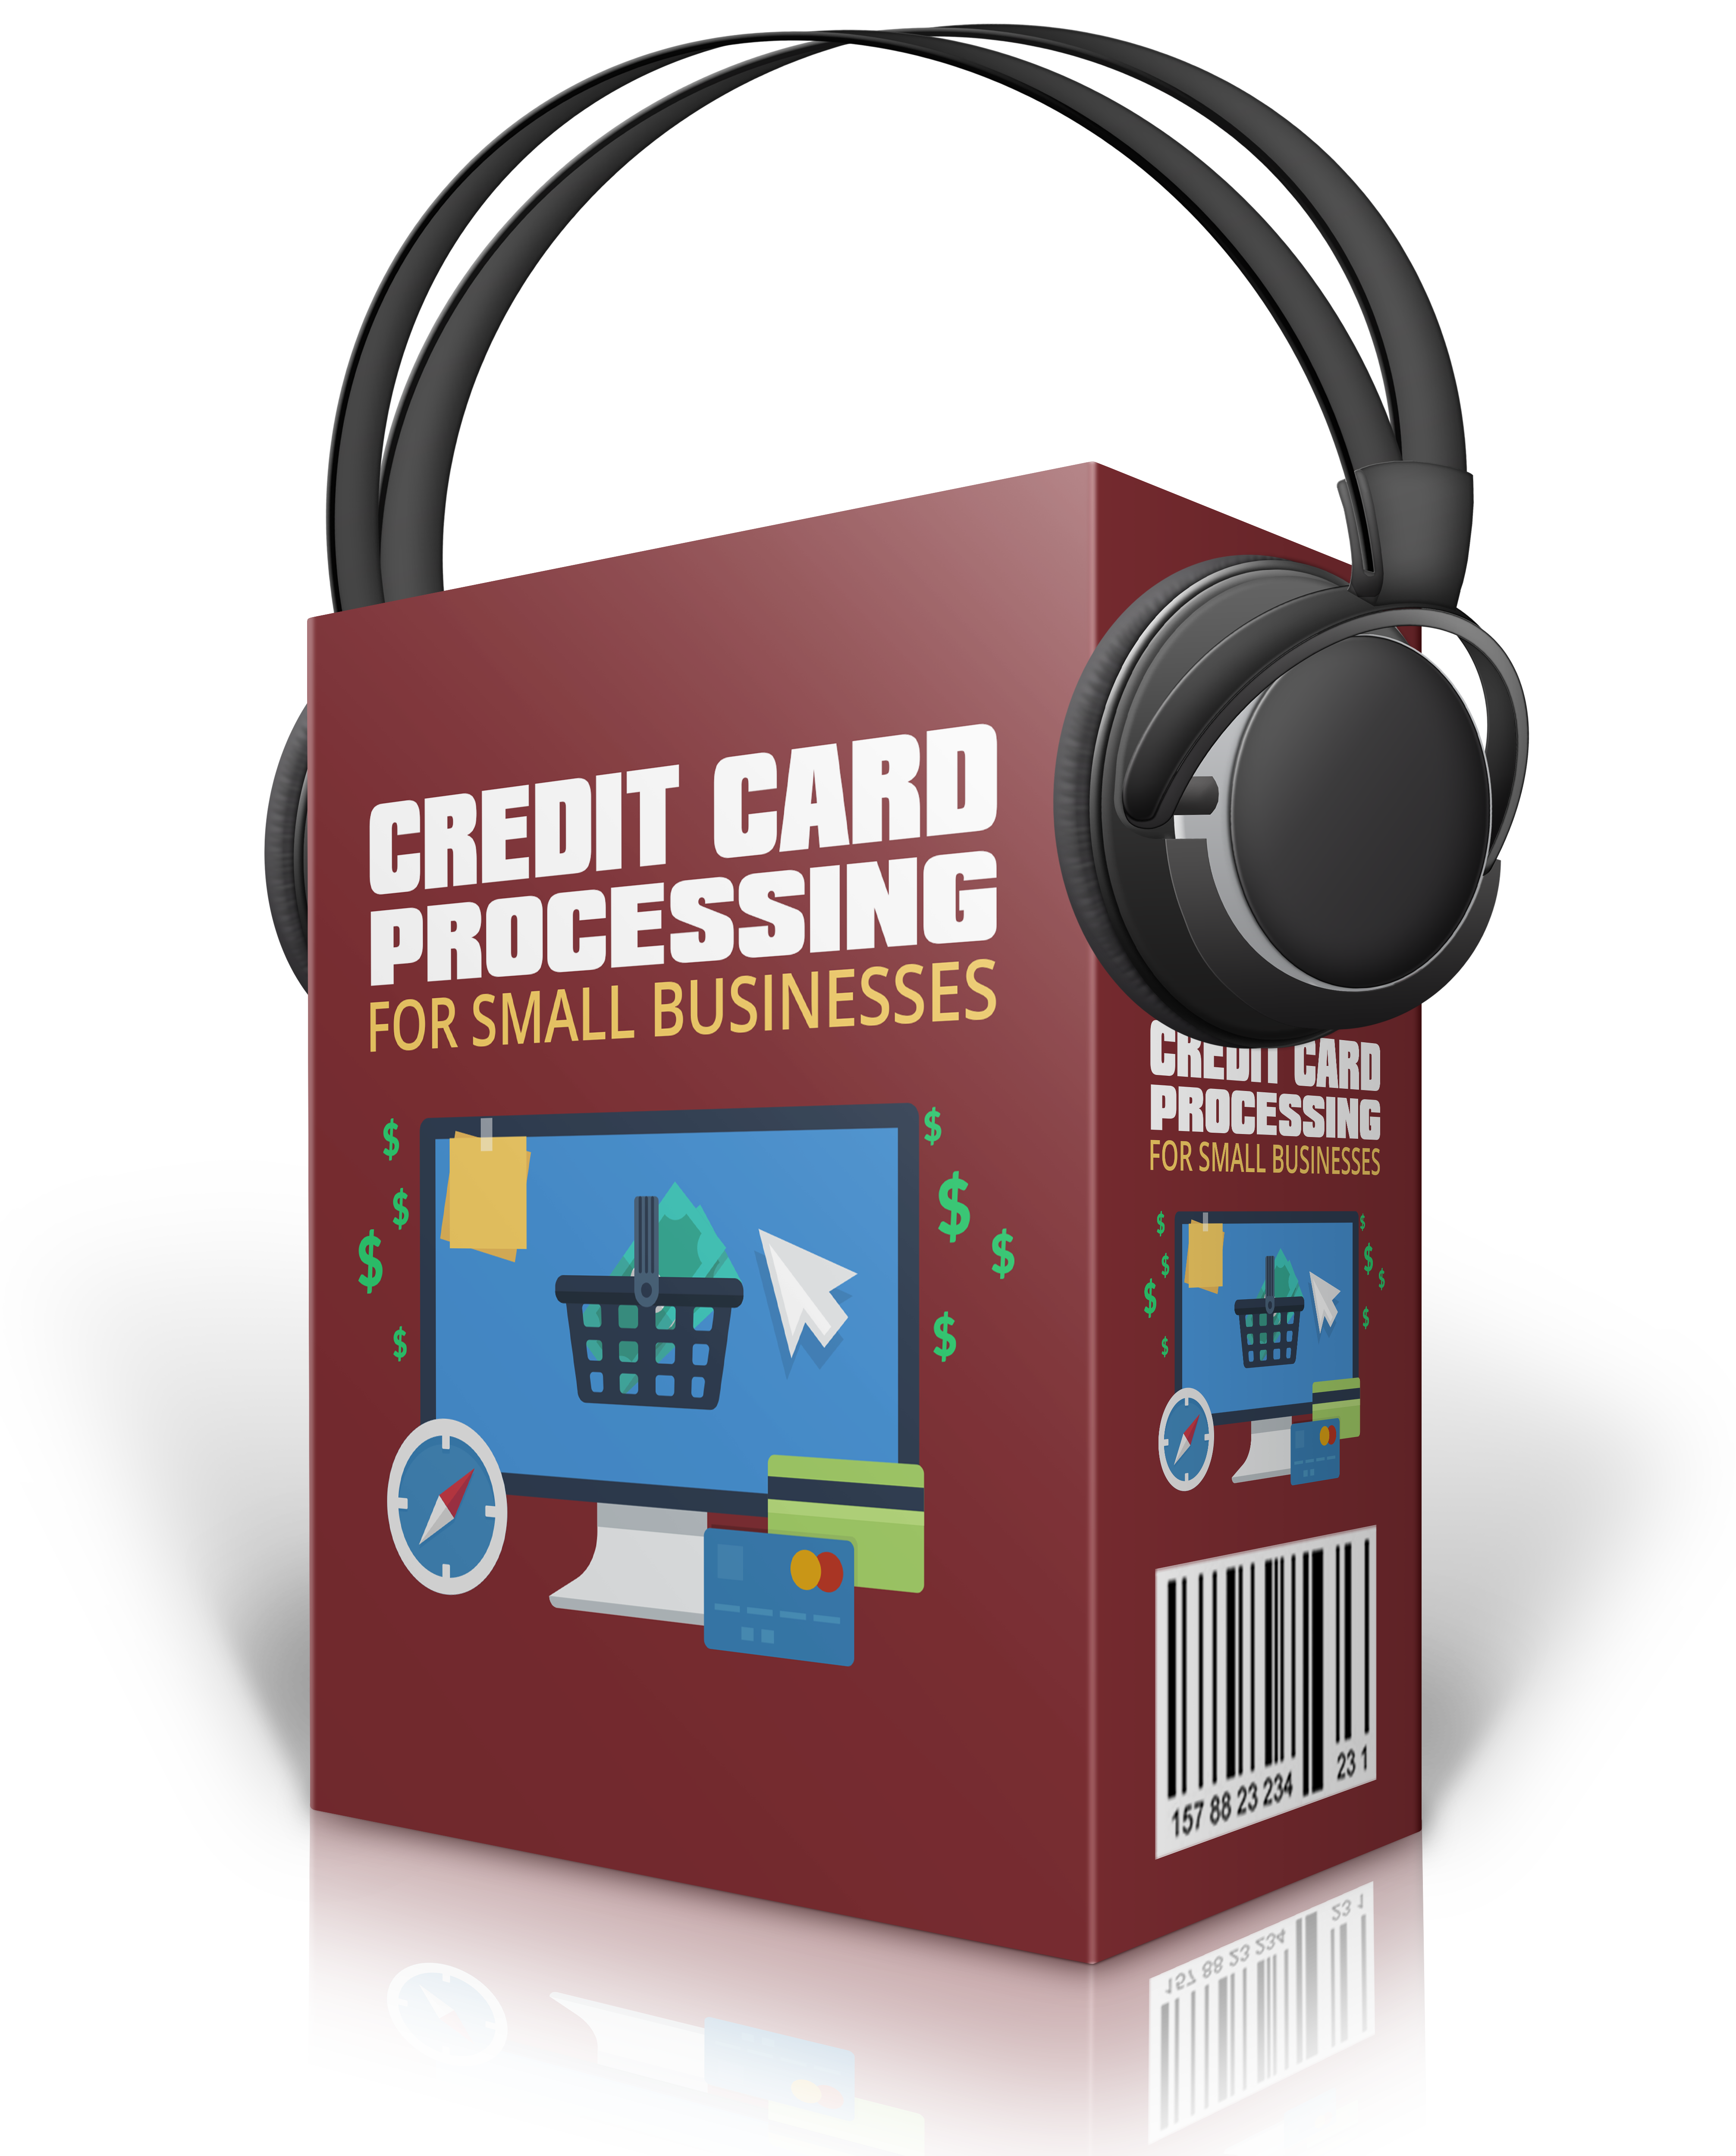 Credit card processing for small business audio series pack credit card processing for small business audio series pack page 1 crdtcrdprcssngsmllbiz colourmoves